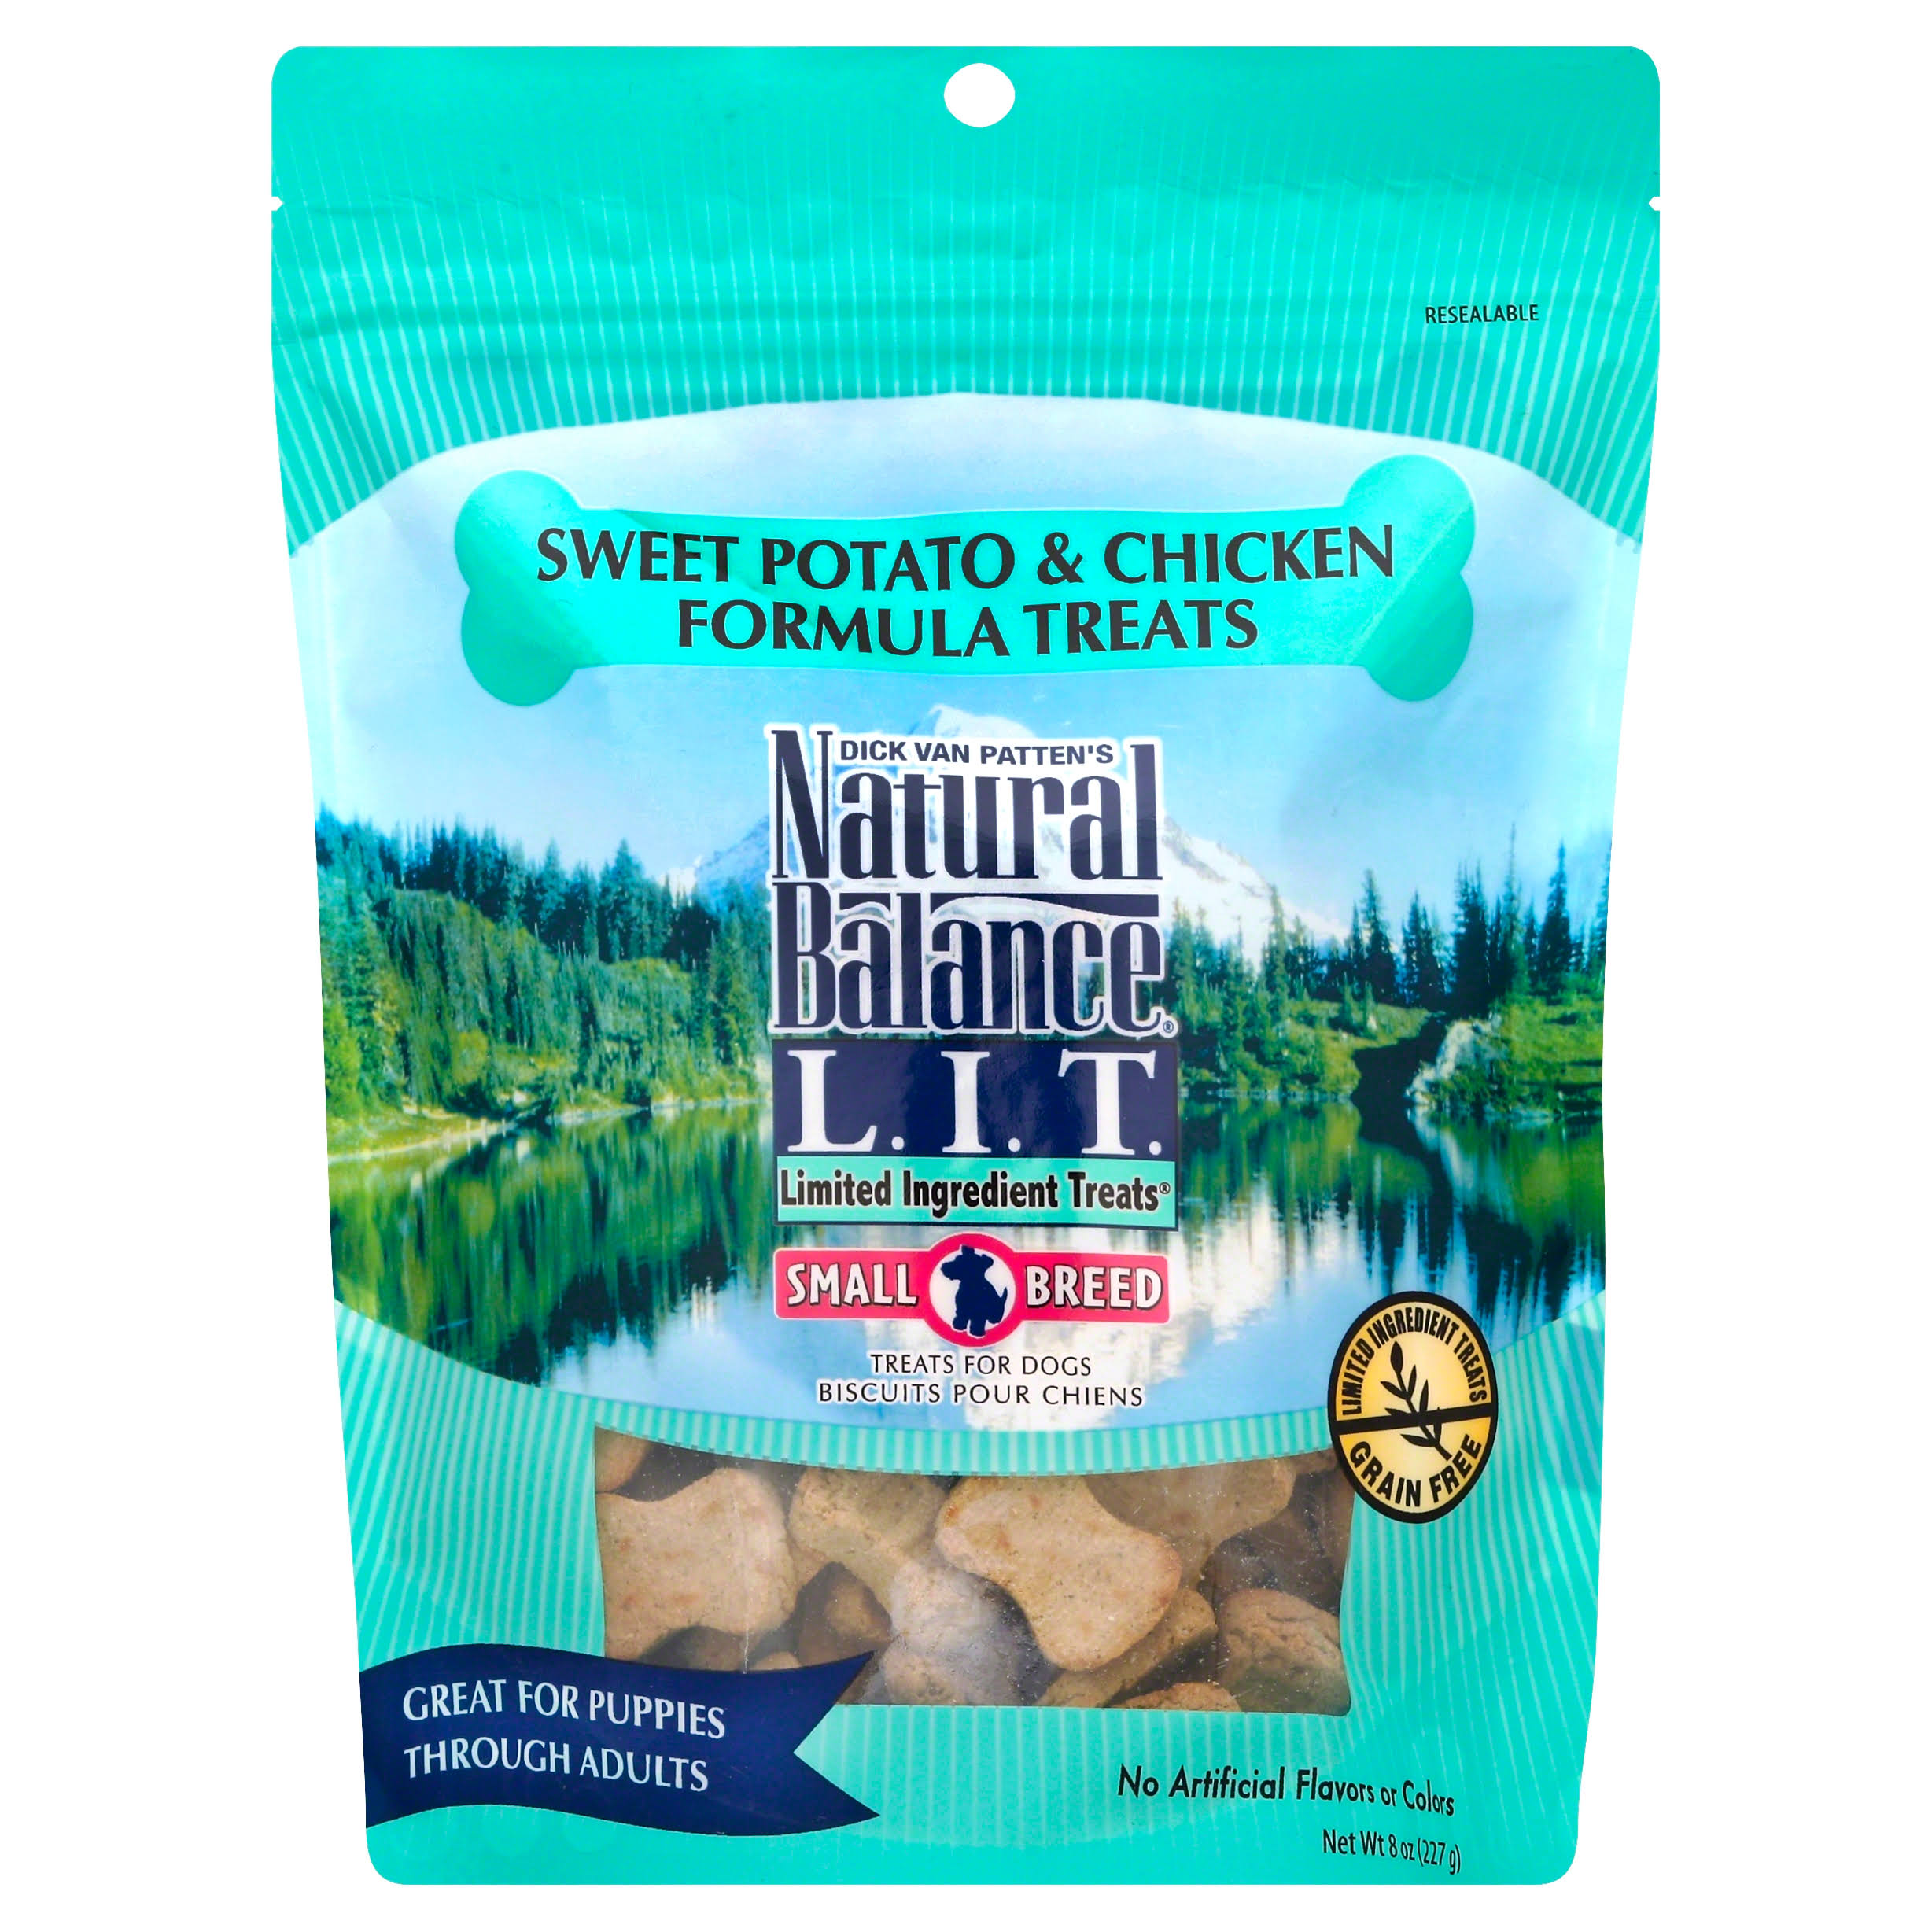 Natural Balance Limited Ingredient Treats - Sweet Potato and Chicken